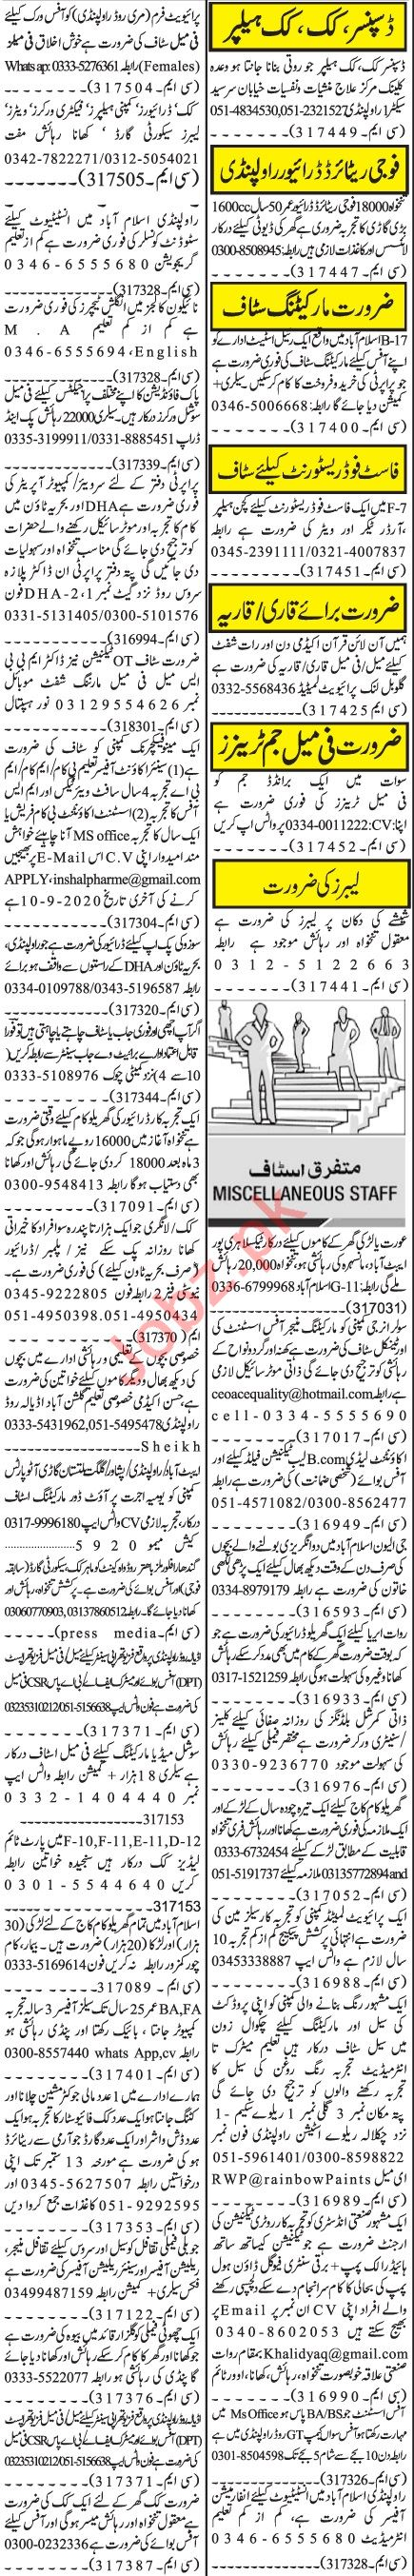 Jang Sunday Classified Ads 6 Sep 2020 for General Staff